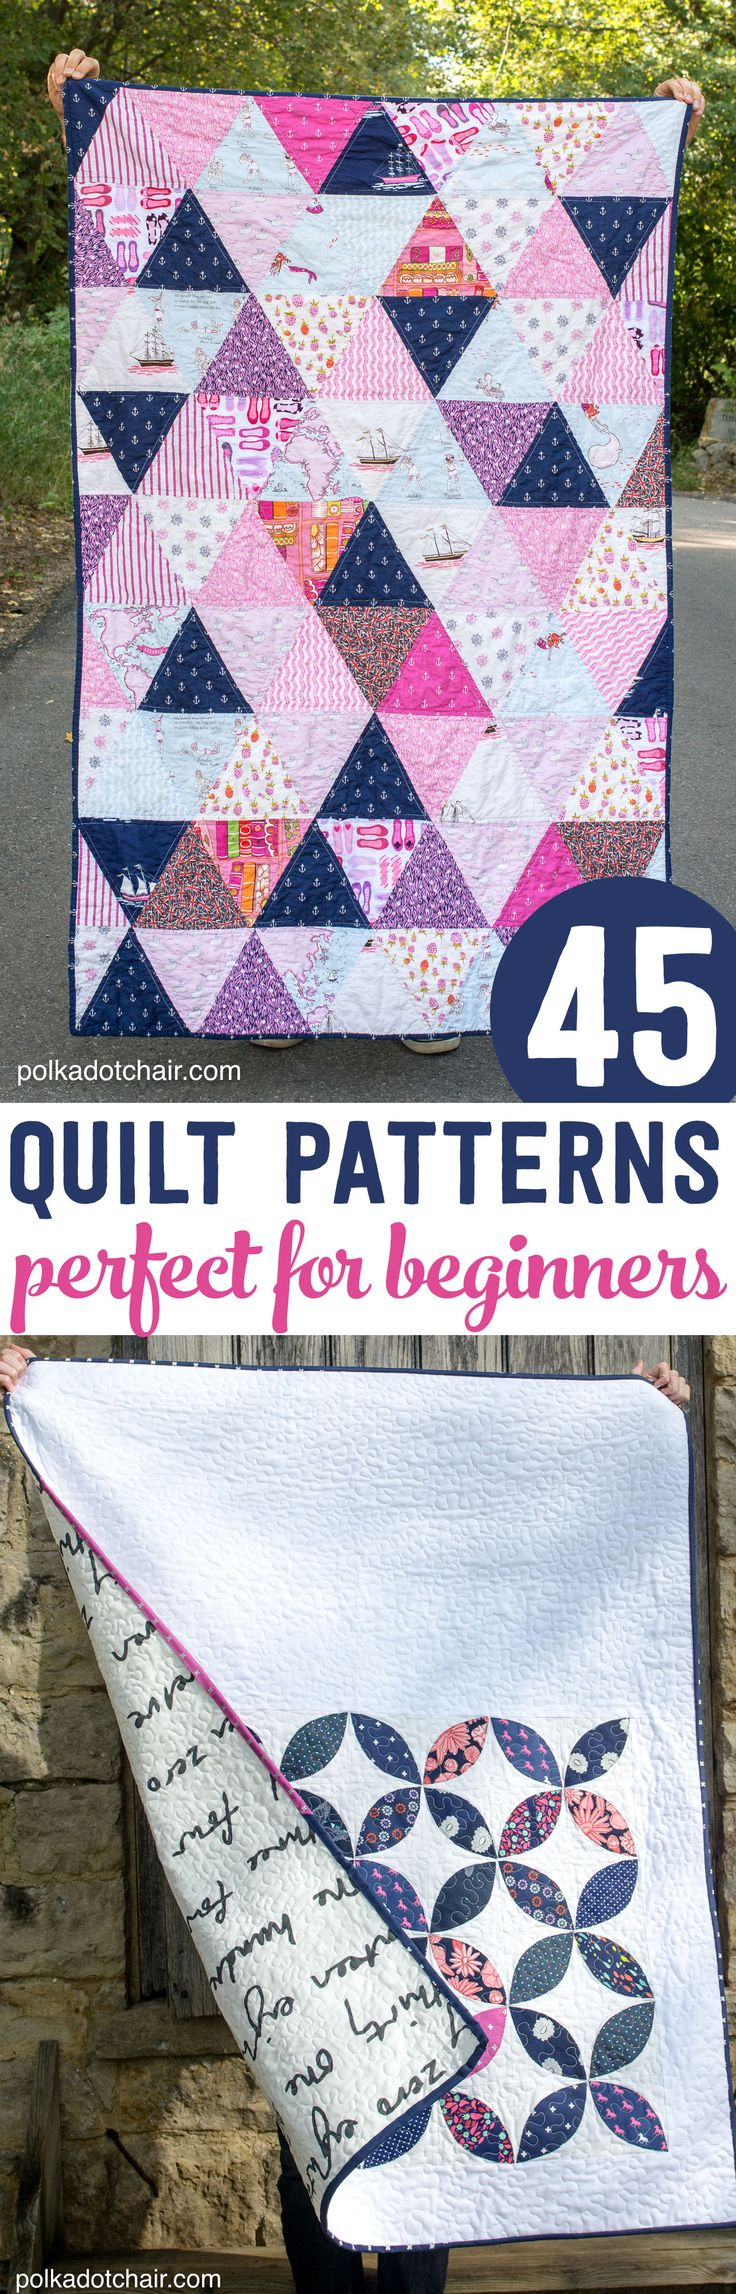 45 Quilt Patterns perfect for a beginning quilter- most of them are free! #begin...